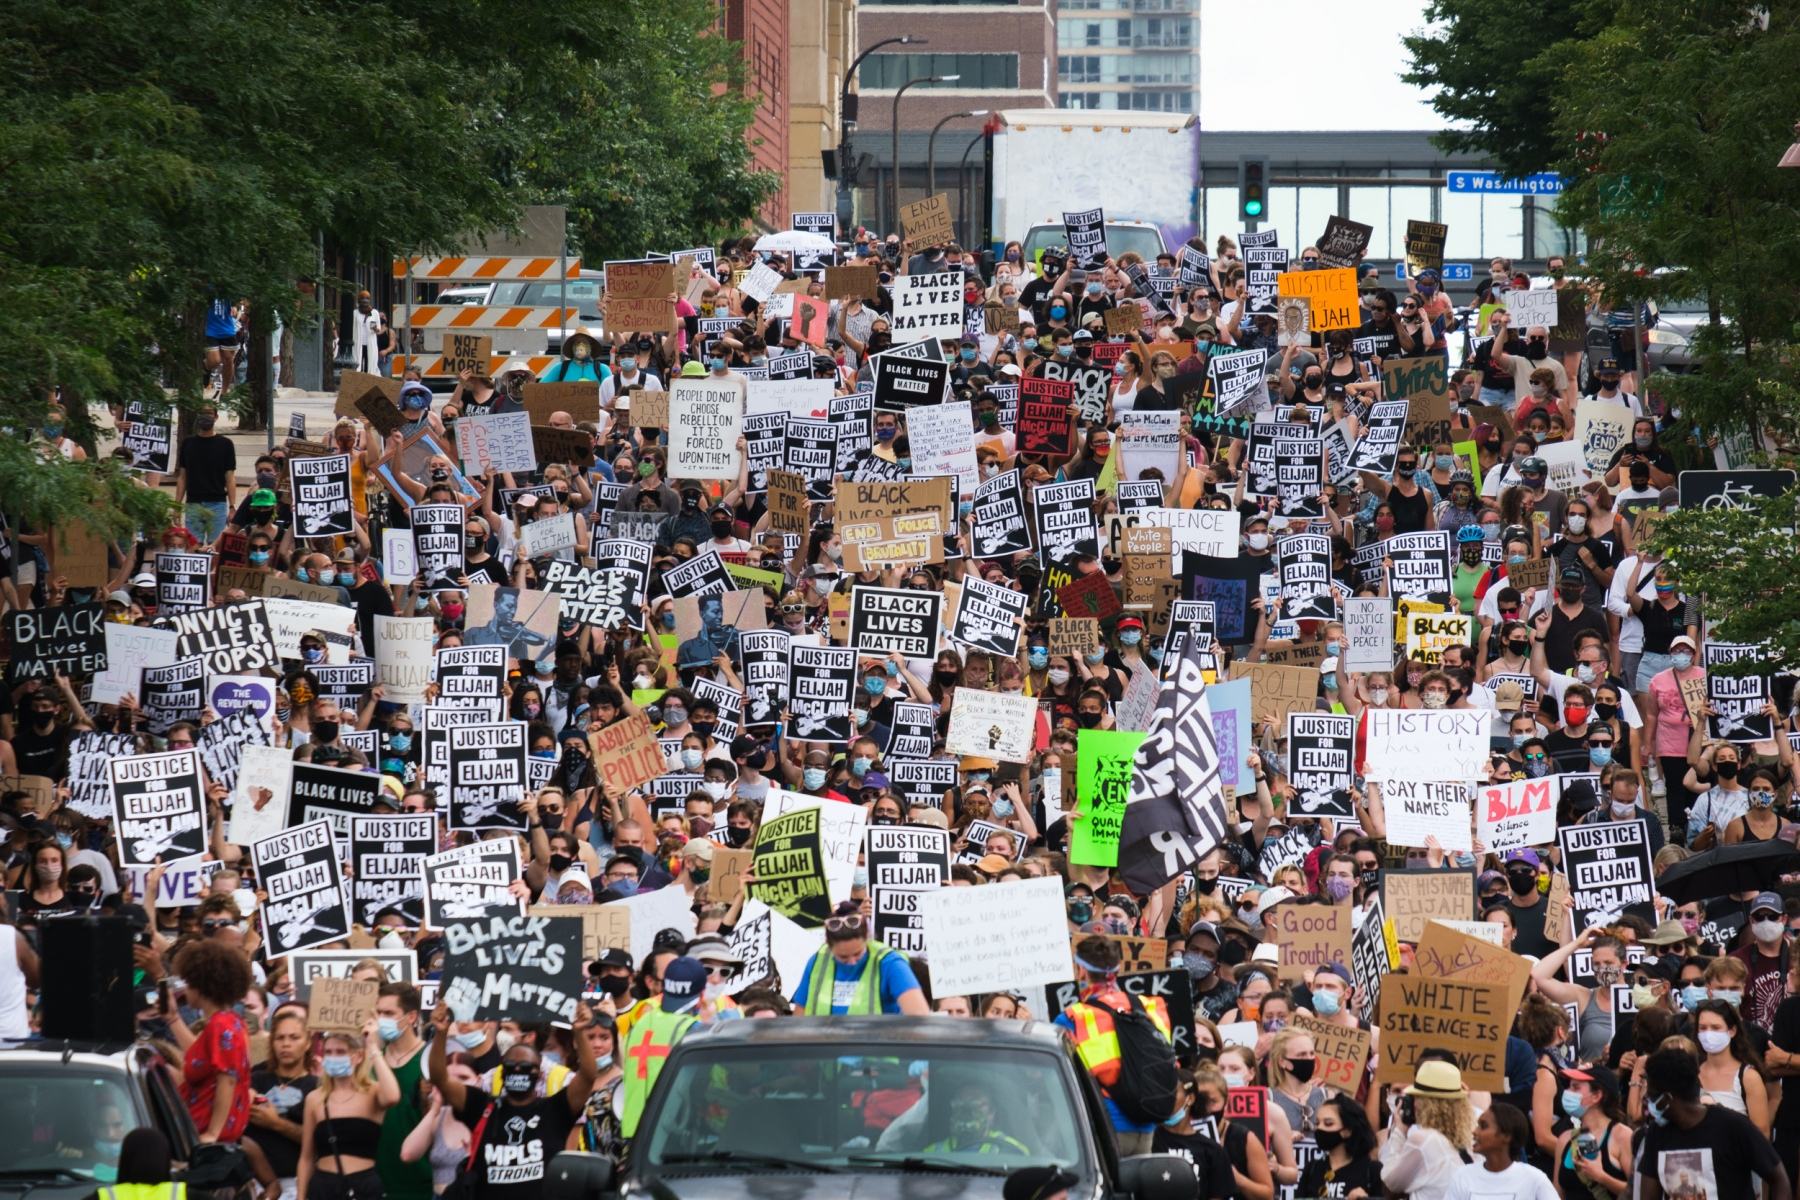 Hundreds of protestors march through Minneapolis on July 18, 2020 to protest the killing of Elijah McClain by police and first responders last August in Aurora, Colorado.